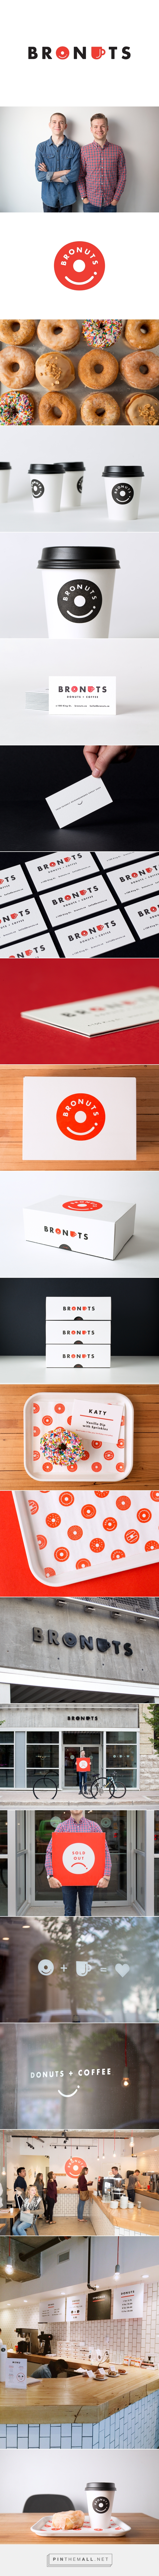 Bronuts Brand Identity on Behance... - a grouped images picture - Pin Them All